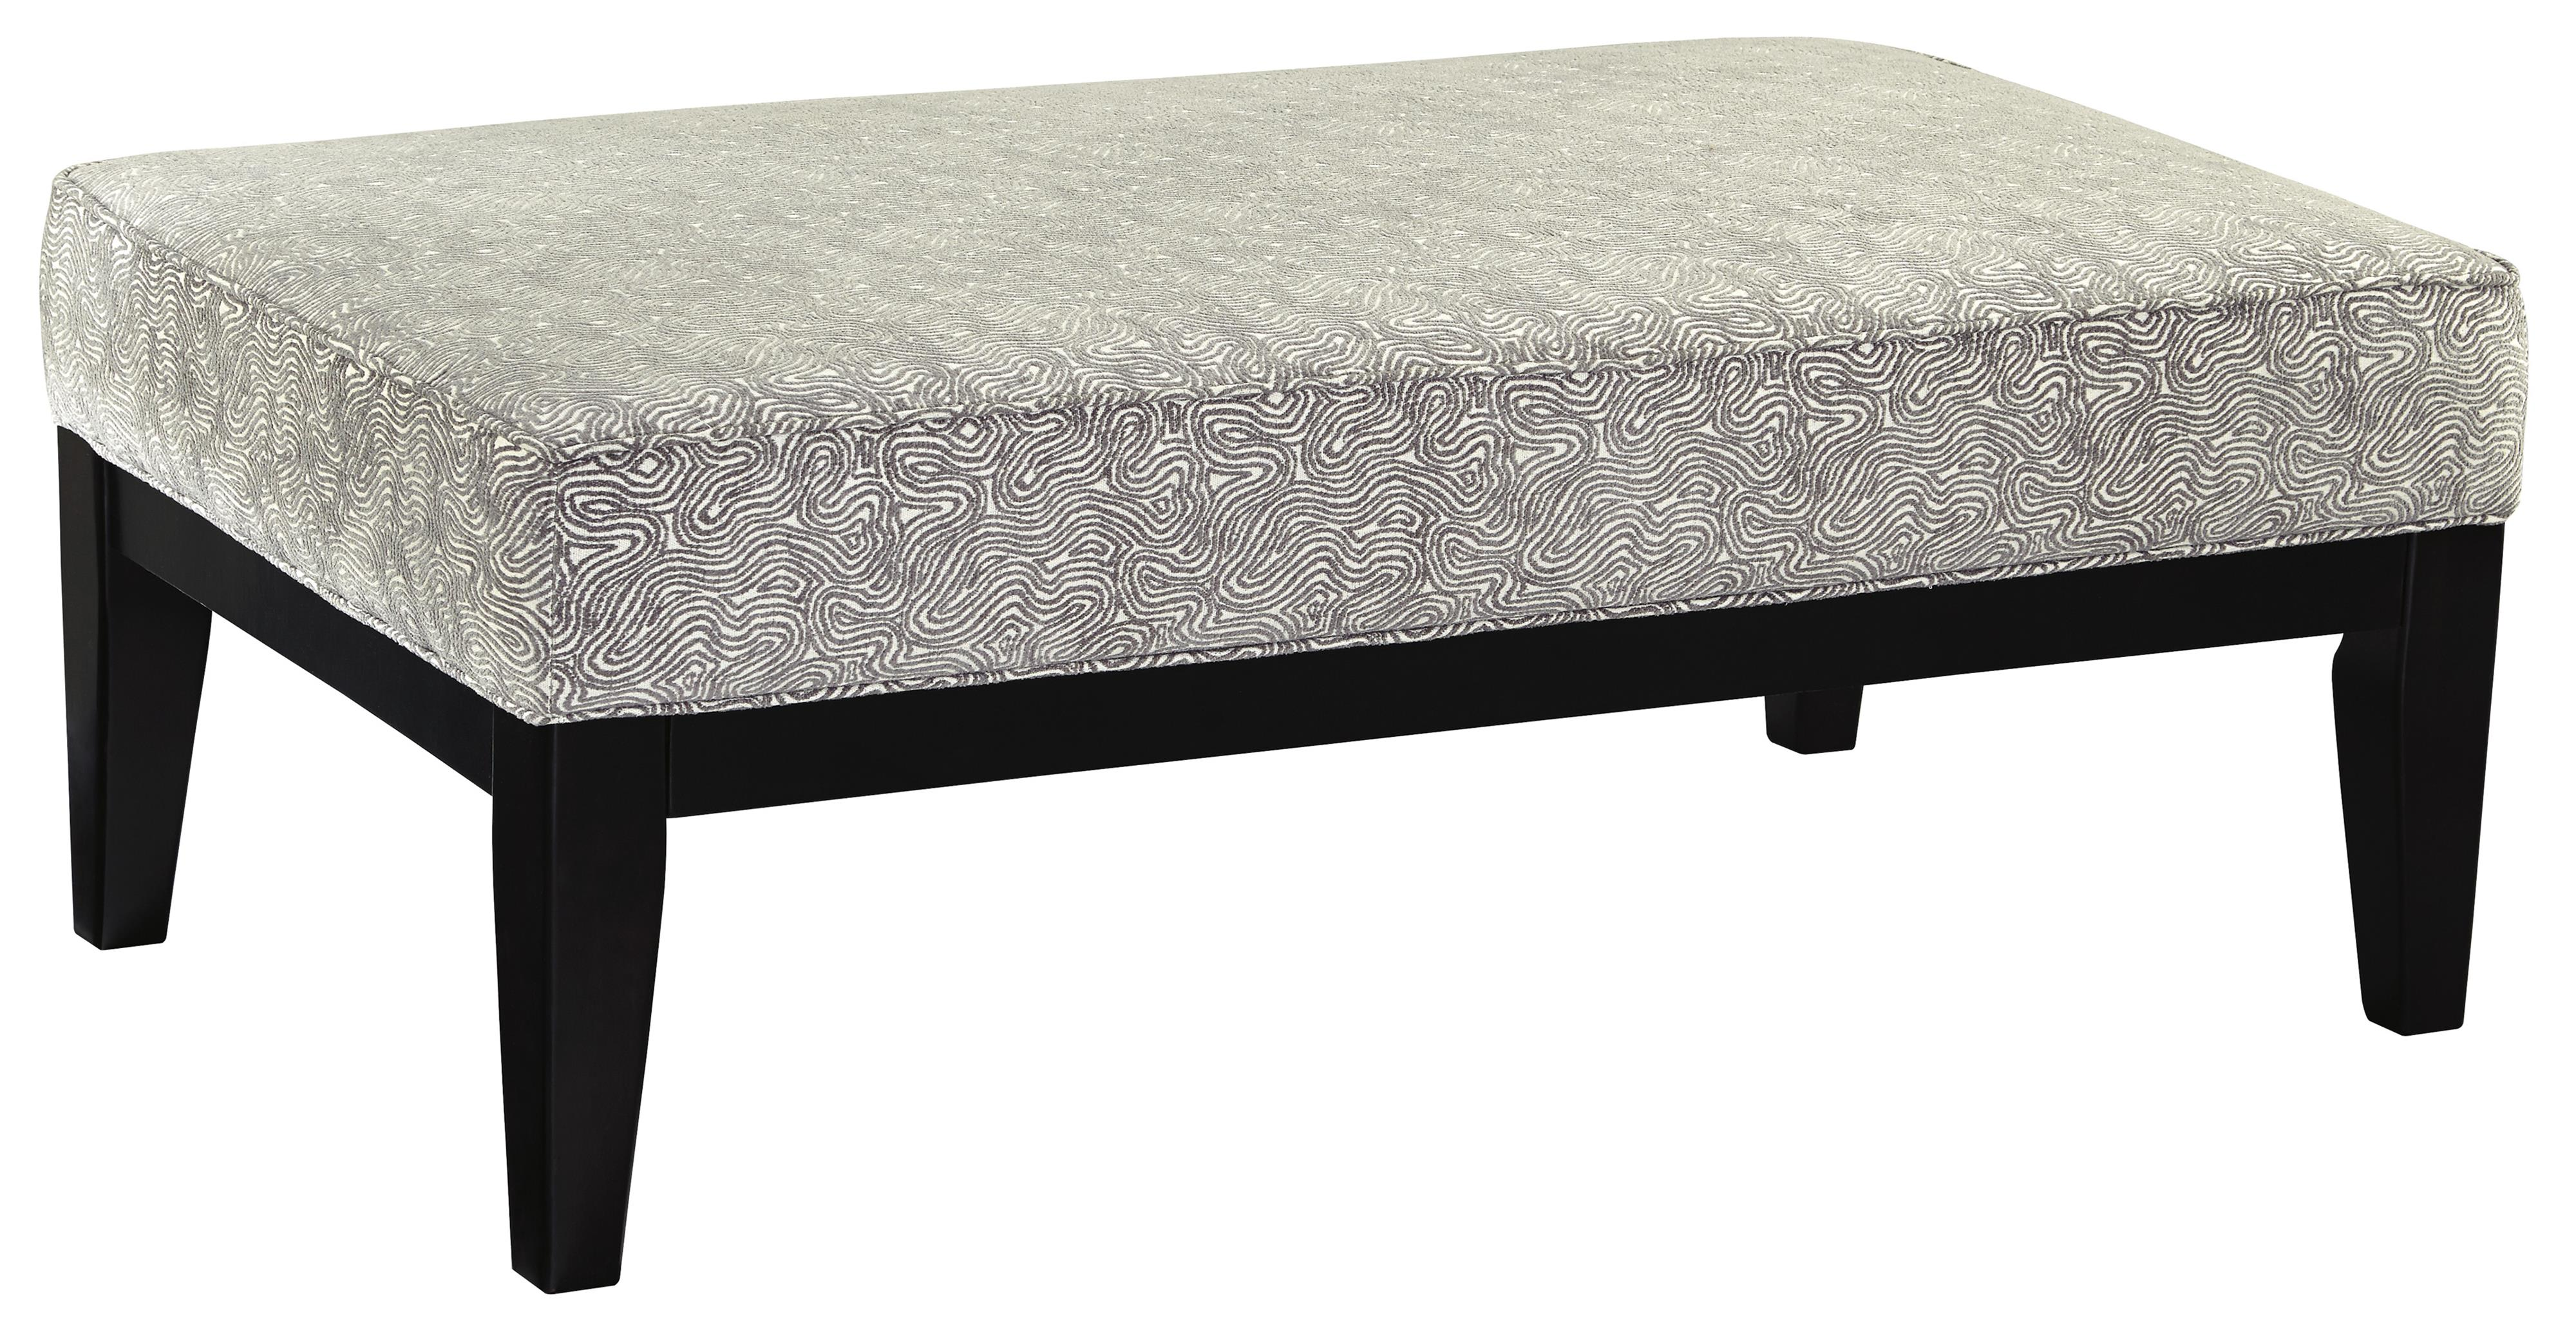 Brielyn Oversized Accent Ottoman by Benchcraft at Lapeer Furniture & Mattress Center